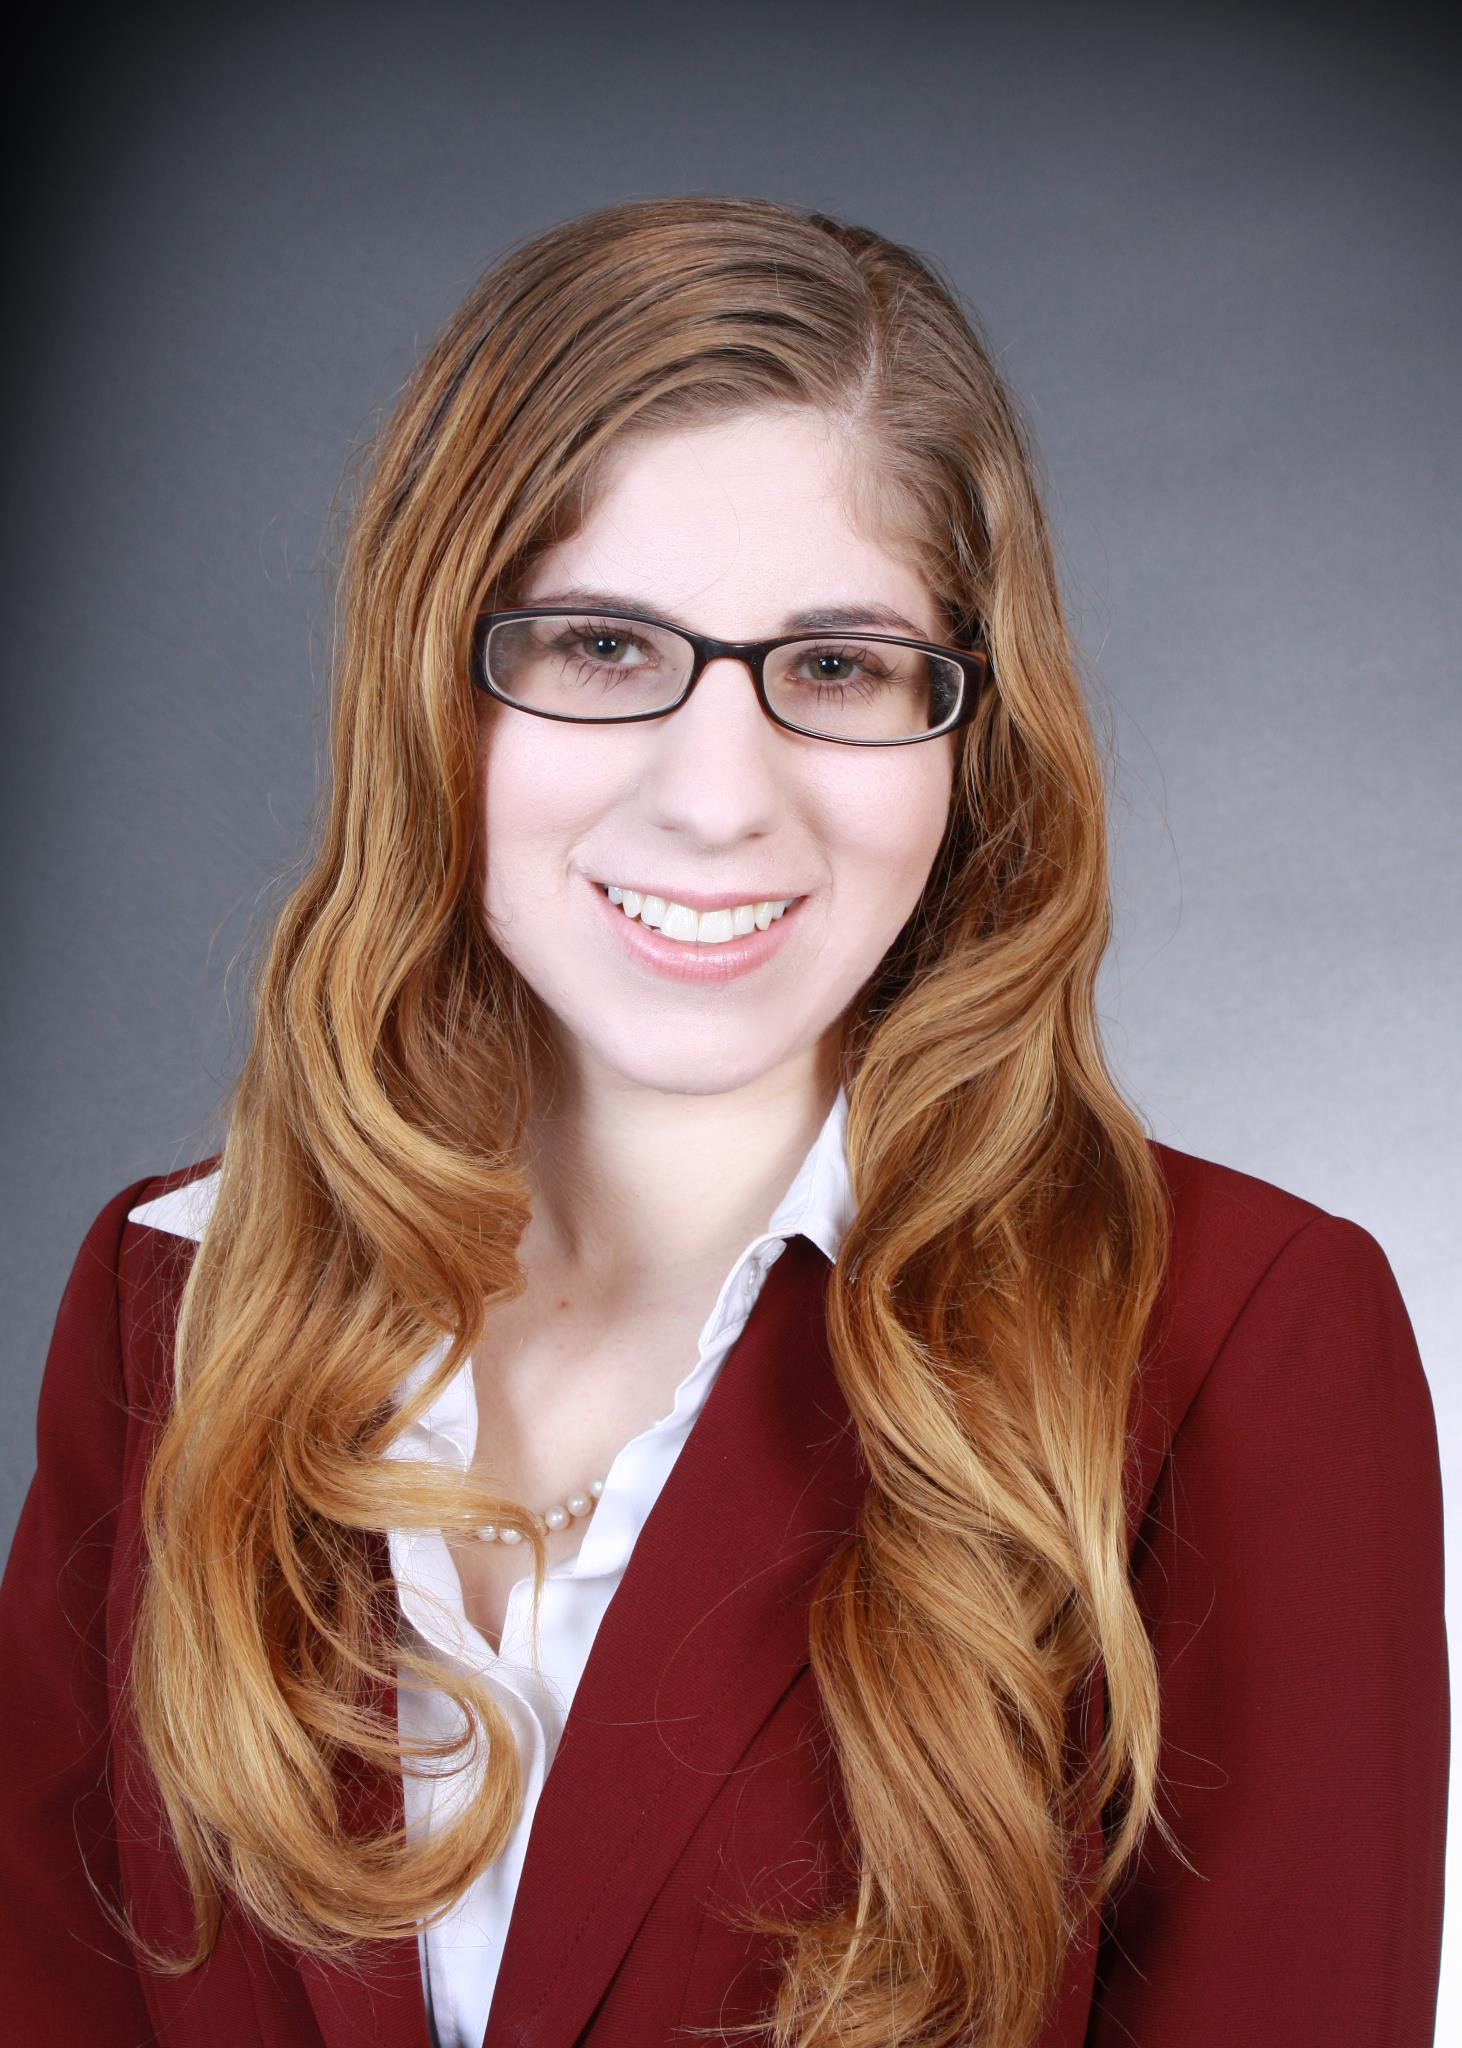 Hannah Hammersmith in Burgundy Suit for Attorney at Law